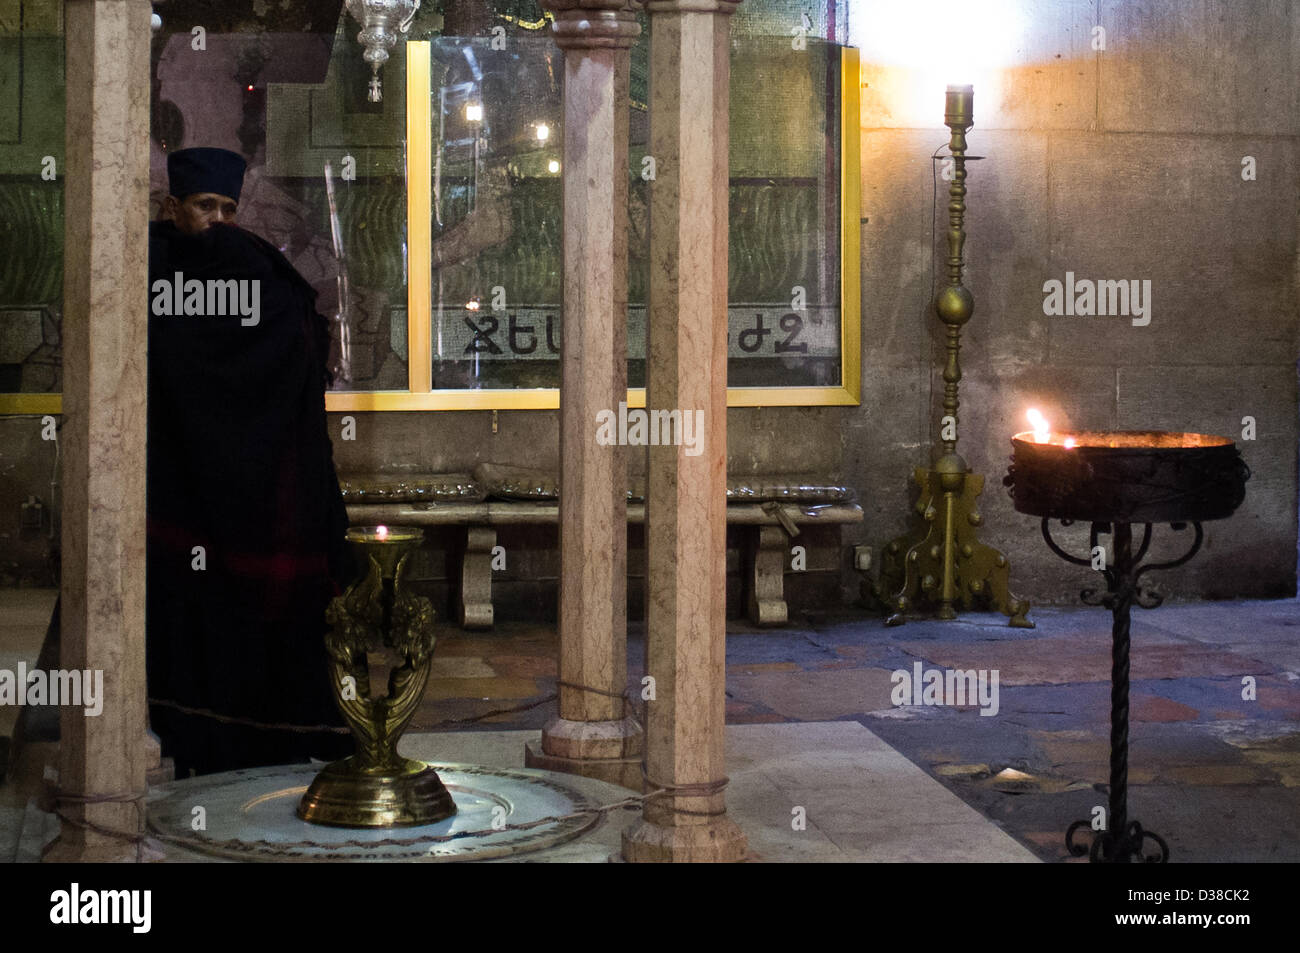 Jerusalem, Israel. 13th February 2013. An Ethiopian priest at the Church of The Holy Sepulchre. Jerusalem, Israel. Stock Photo